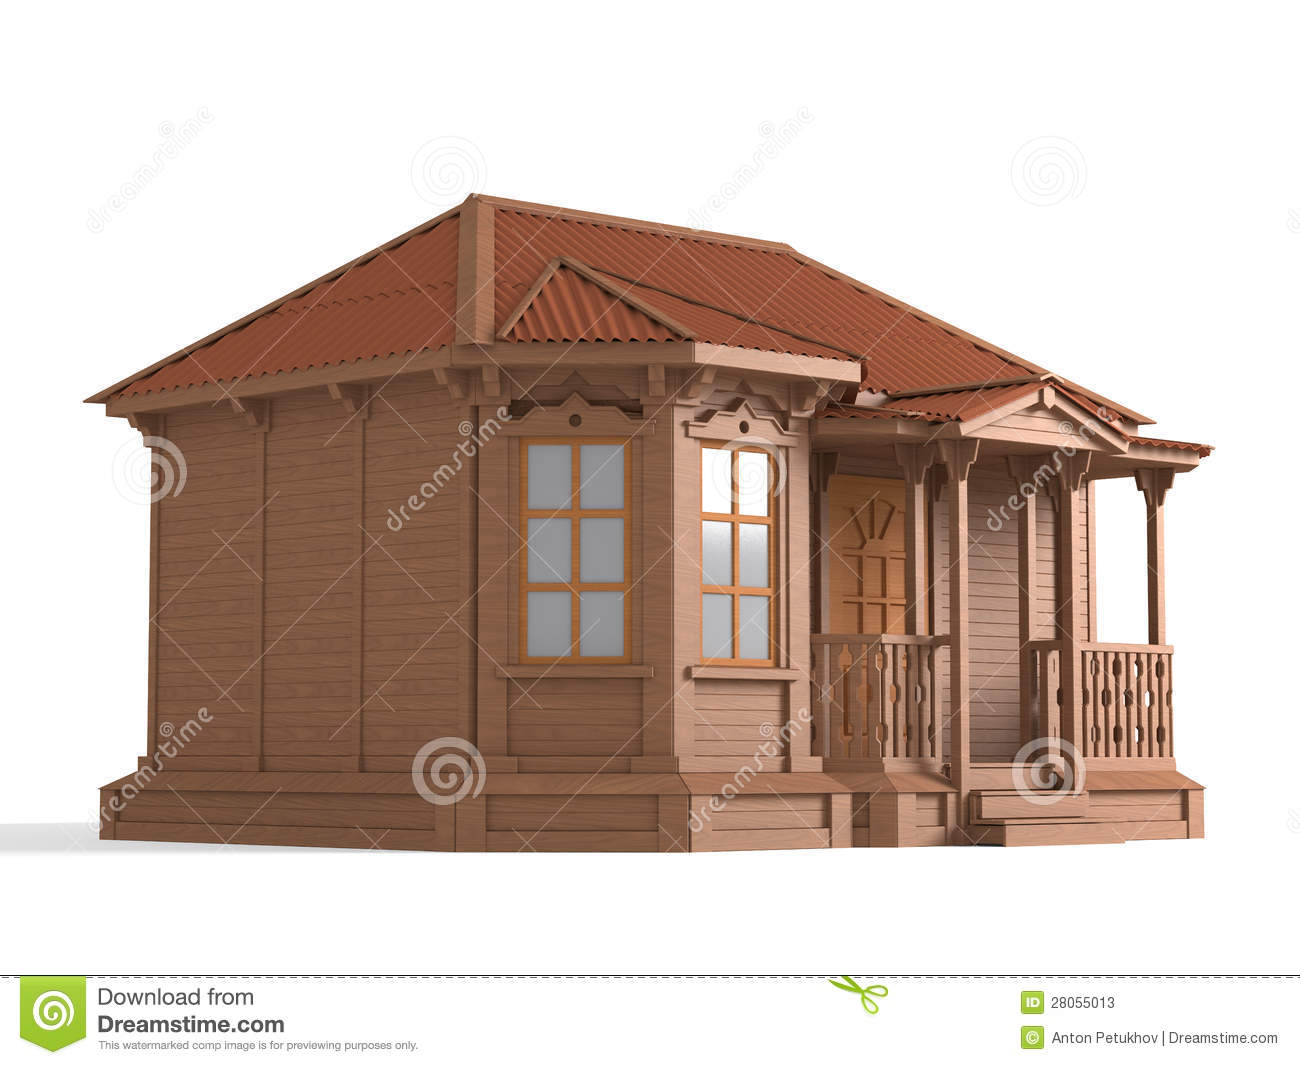 3d model of wooden house stock illustration image of for Dream wooden house